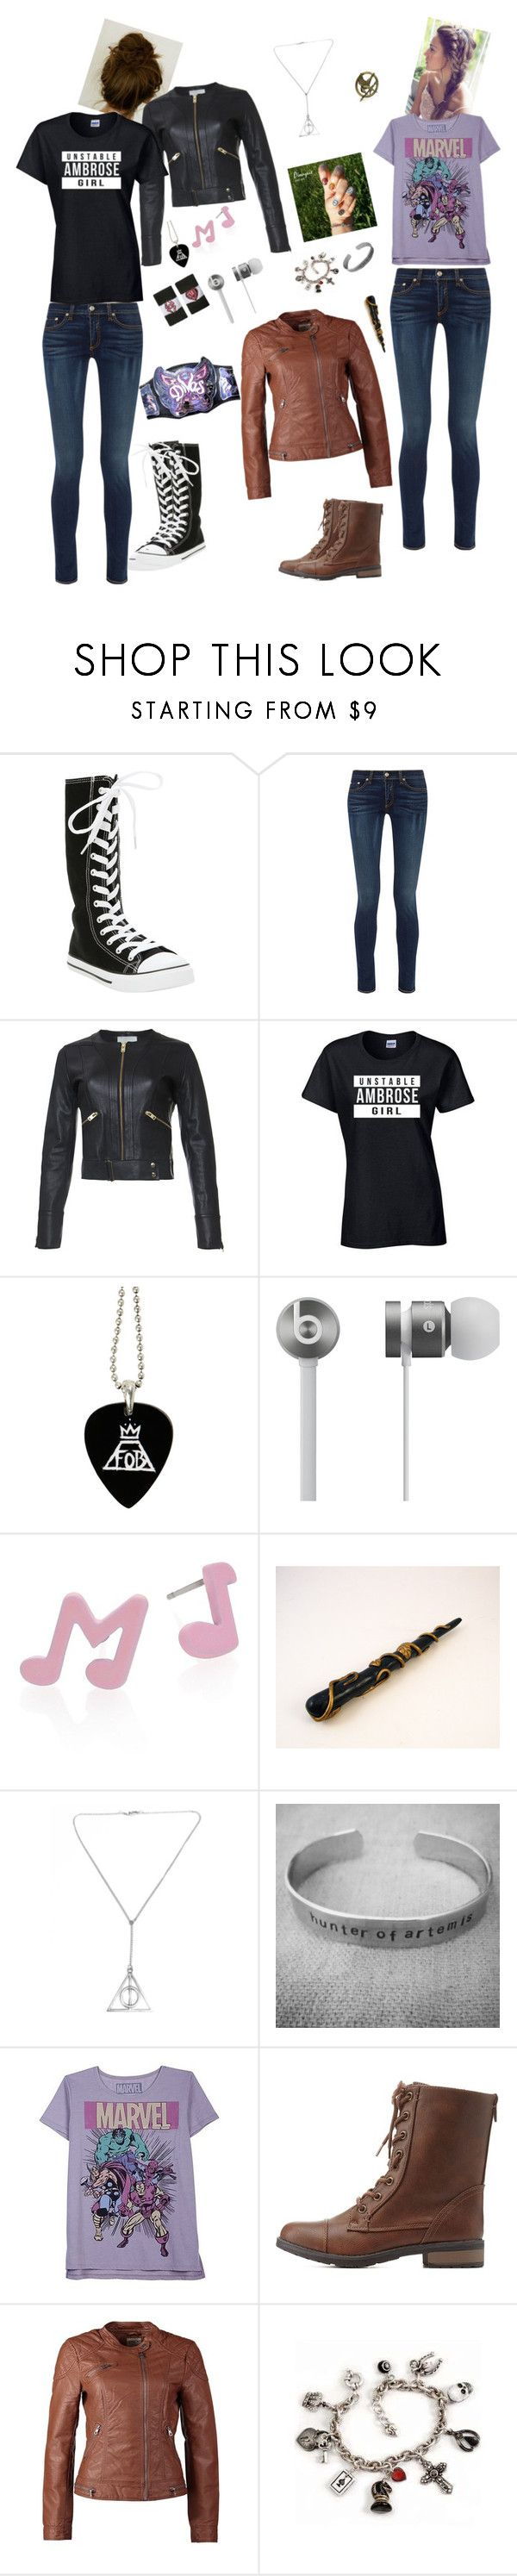 """""""Fandom Outfits"""" by booknerd03 ❤ liked on Polyvore featuring Hot Topic, rag & bone, IRO, Beats by Dr. Dre, Marc by Marc Jacobs, WWE, Stele, Awake, Charlotte Russe and ONLY"""